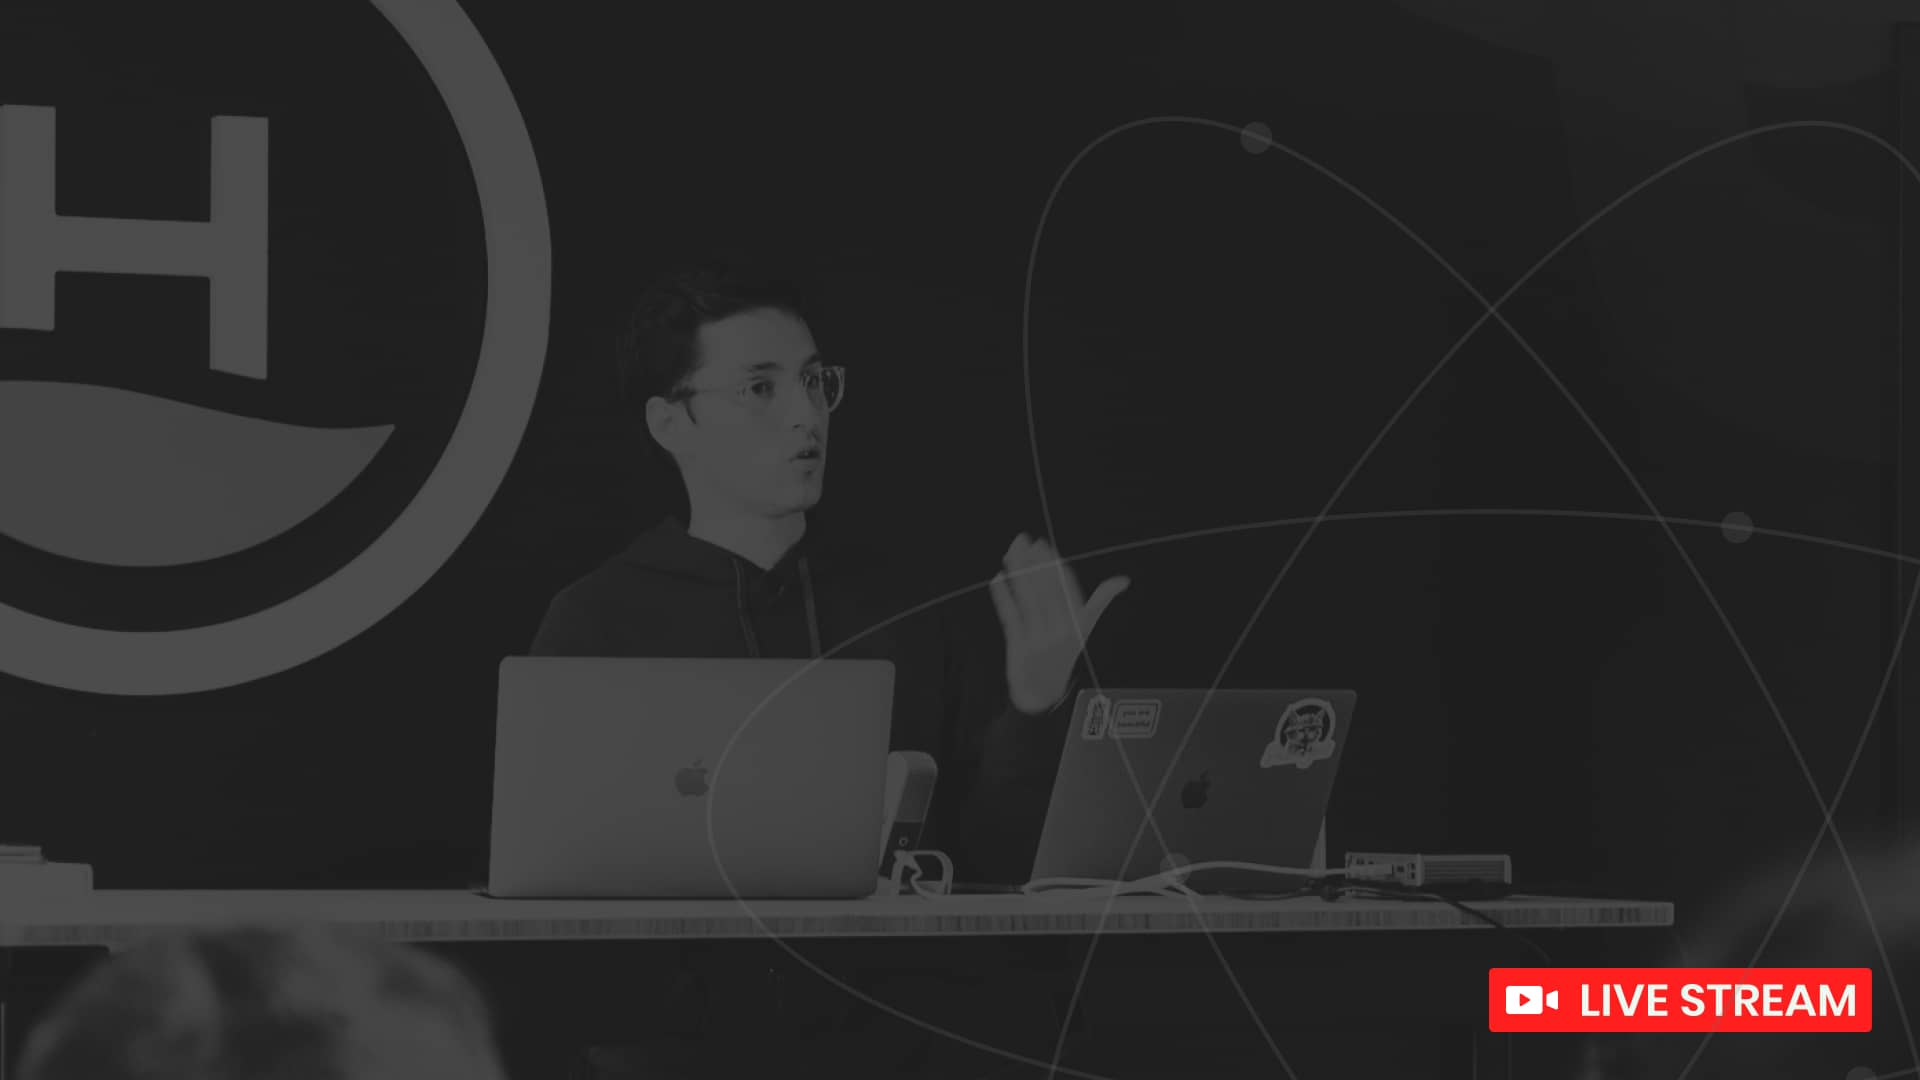 graphql event promo image with person speaking